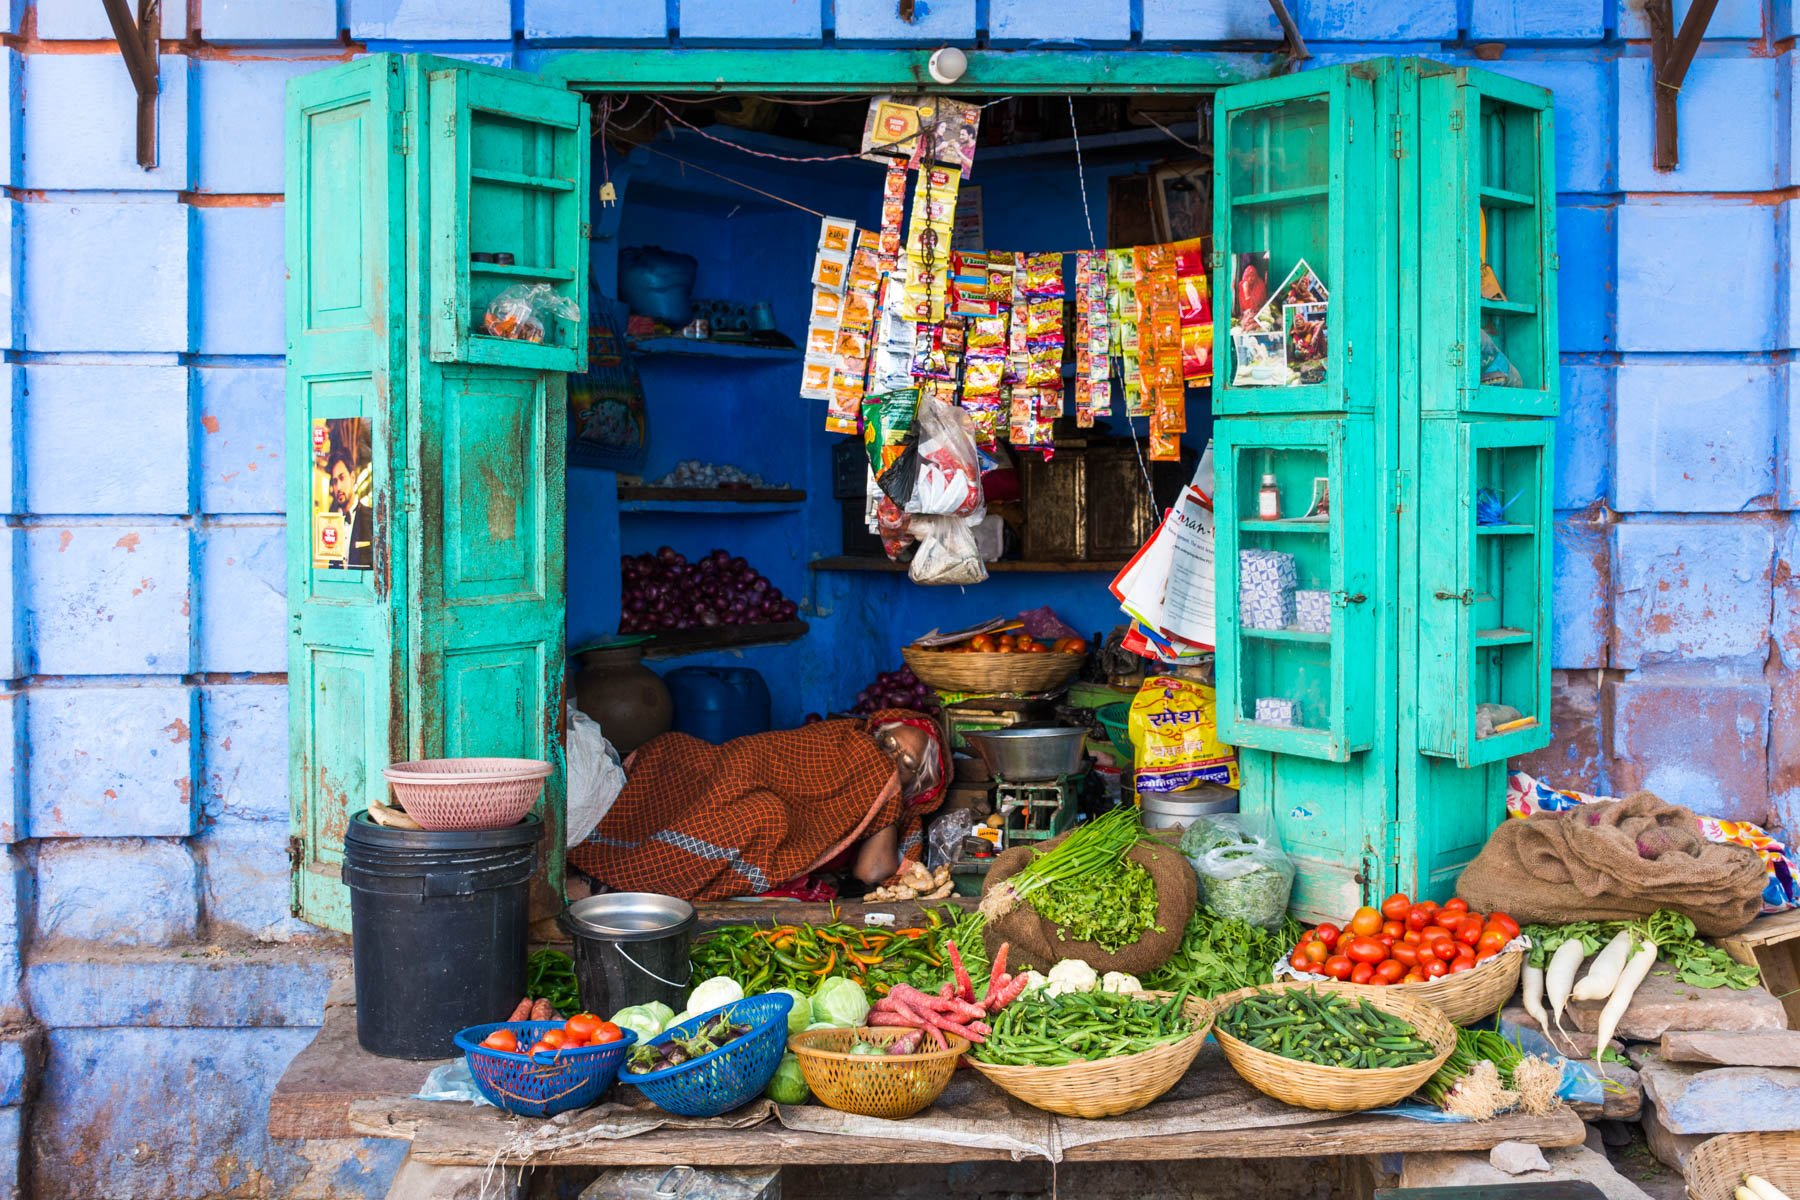 Photo essay about the streets and people of the Blue City of Jodhpur, Rajasthan, India - Sleeping aunty storekeeper in a blue storefront - Lost With Purpose